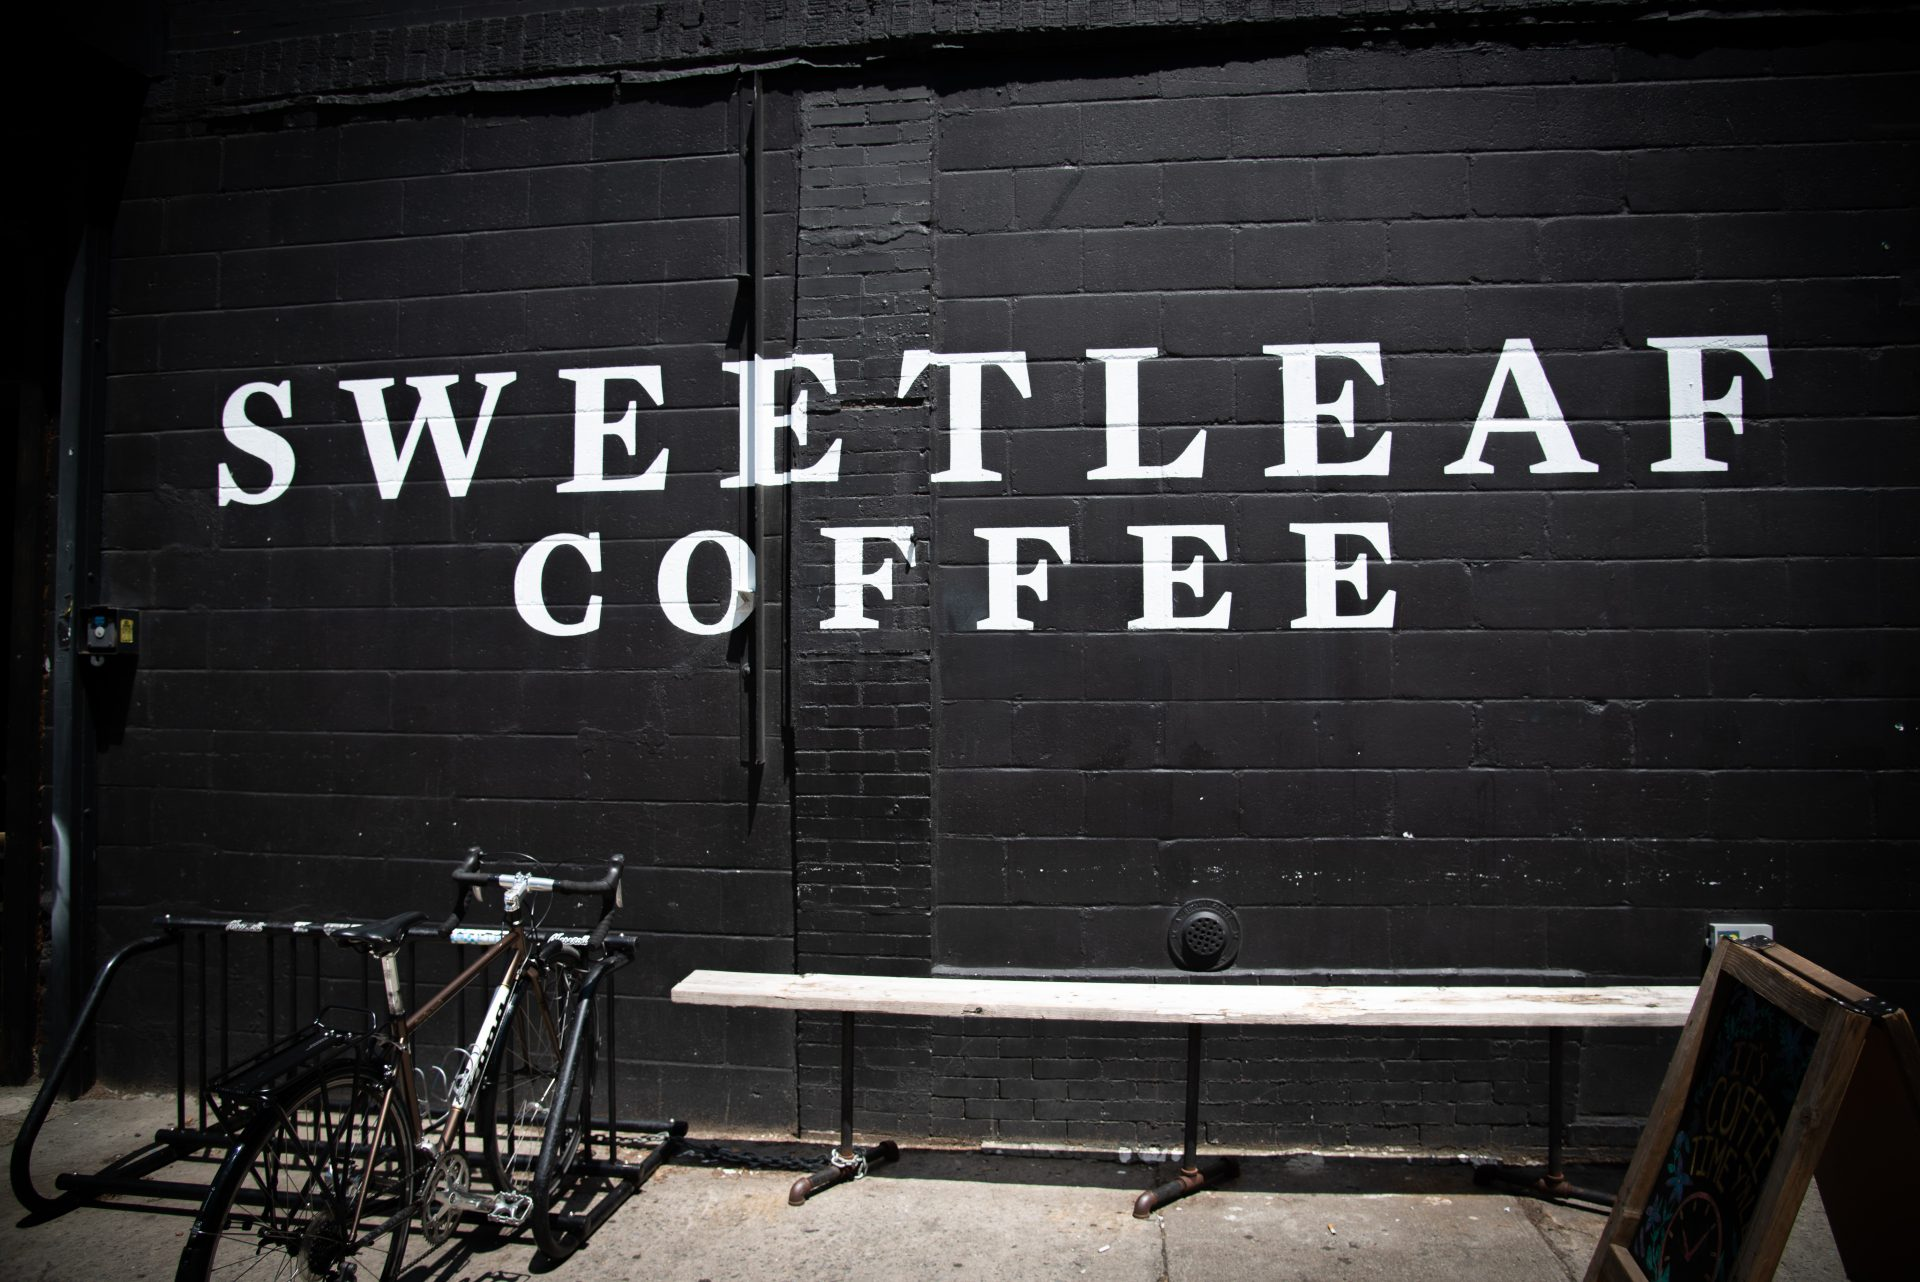 Sweetleaf Coffee in New York